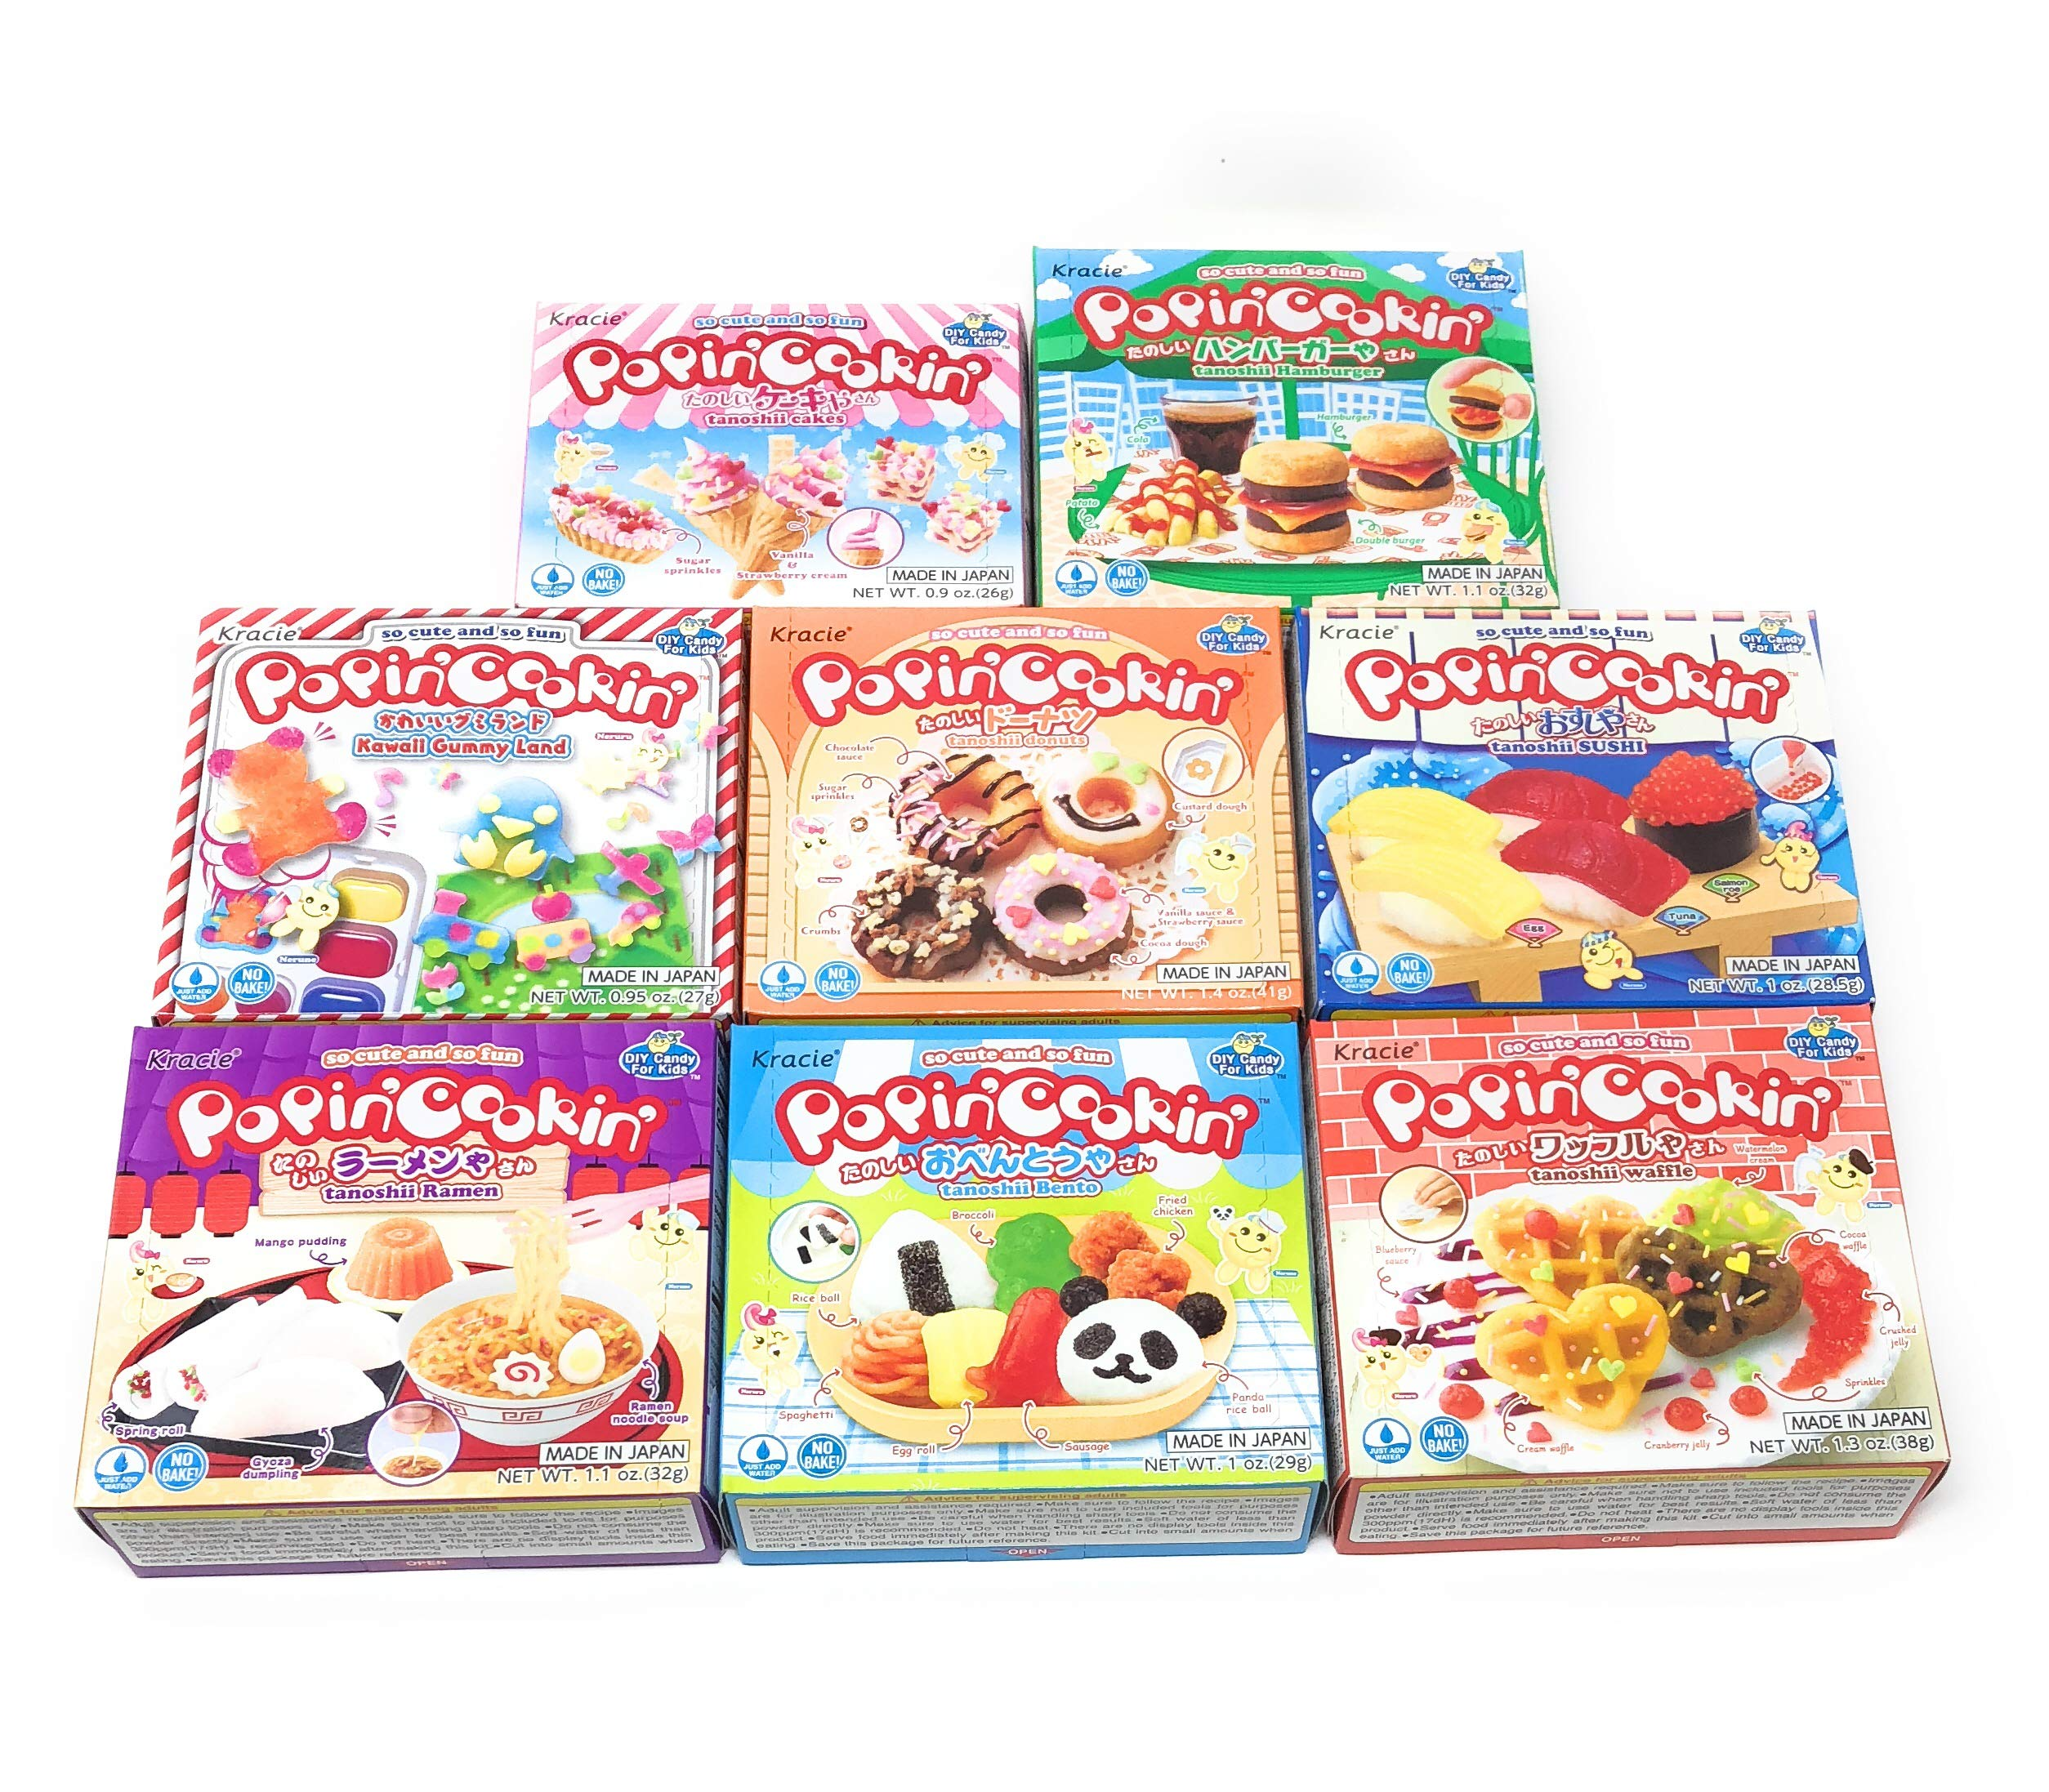 Popin' Cookin Diy Candy Kit (8 Pack Varieties) - Tanoshii Bento, Ramen and Waffle, Cakes, Sushi and Donuts, Hamburger, and Kawaii Gummy Land